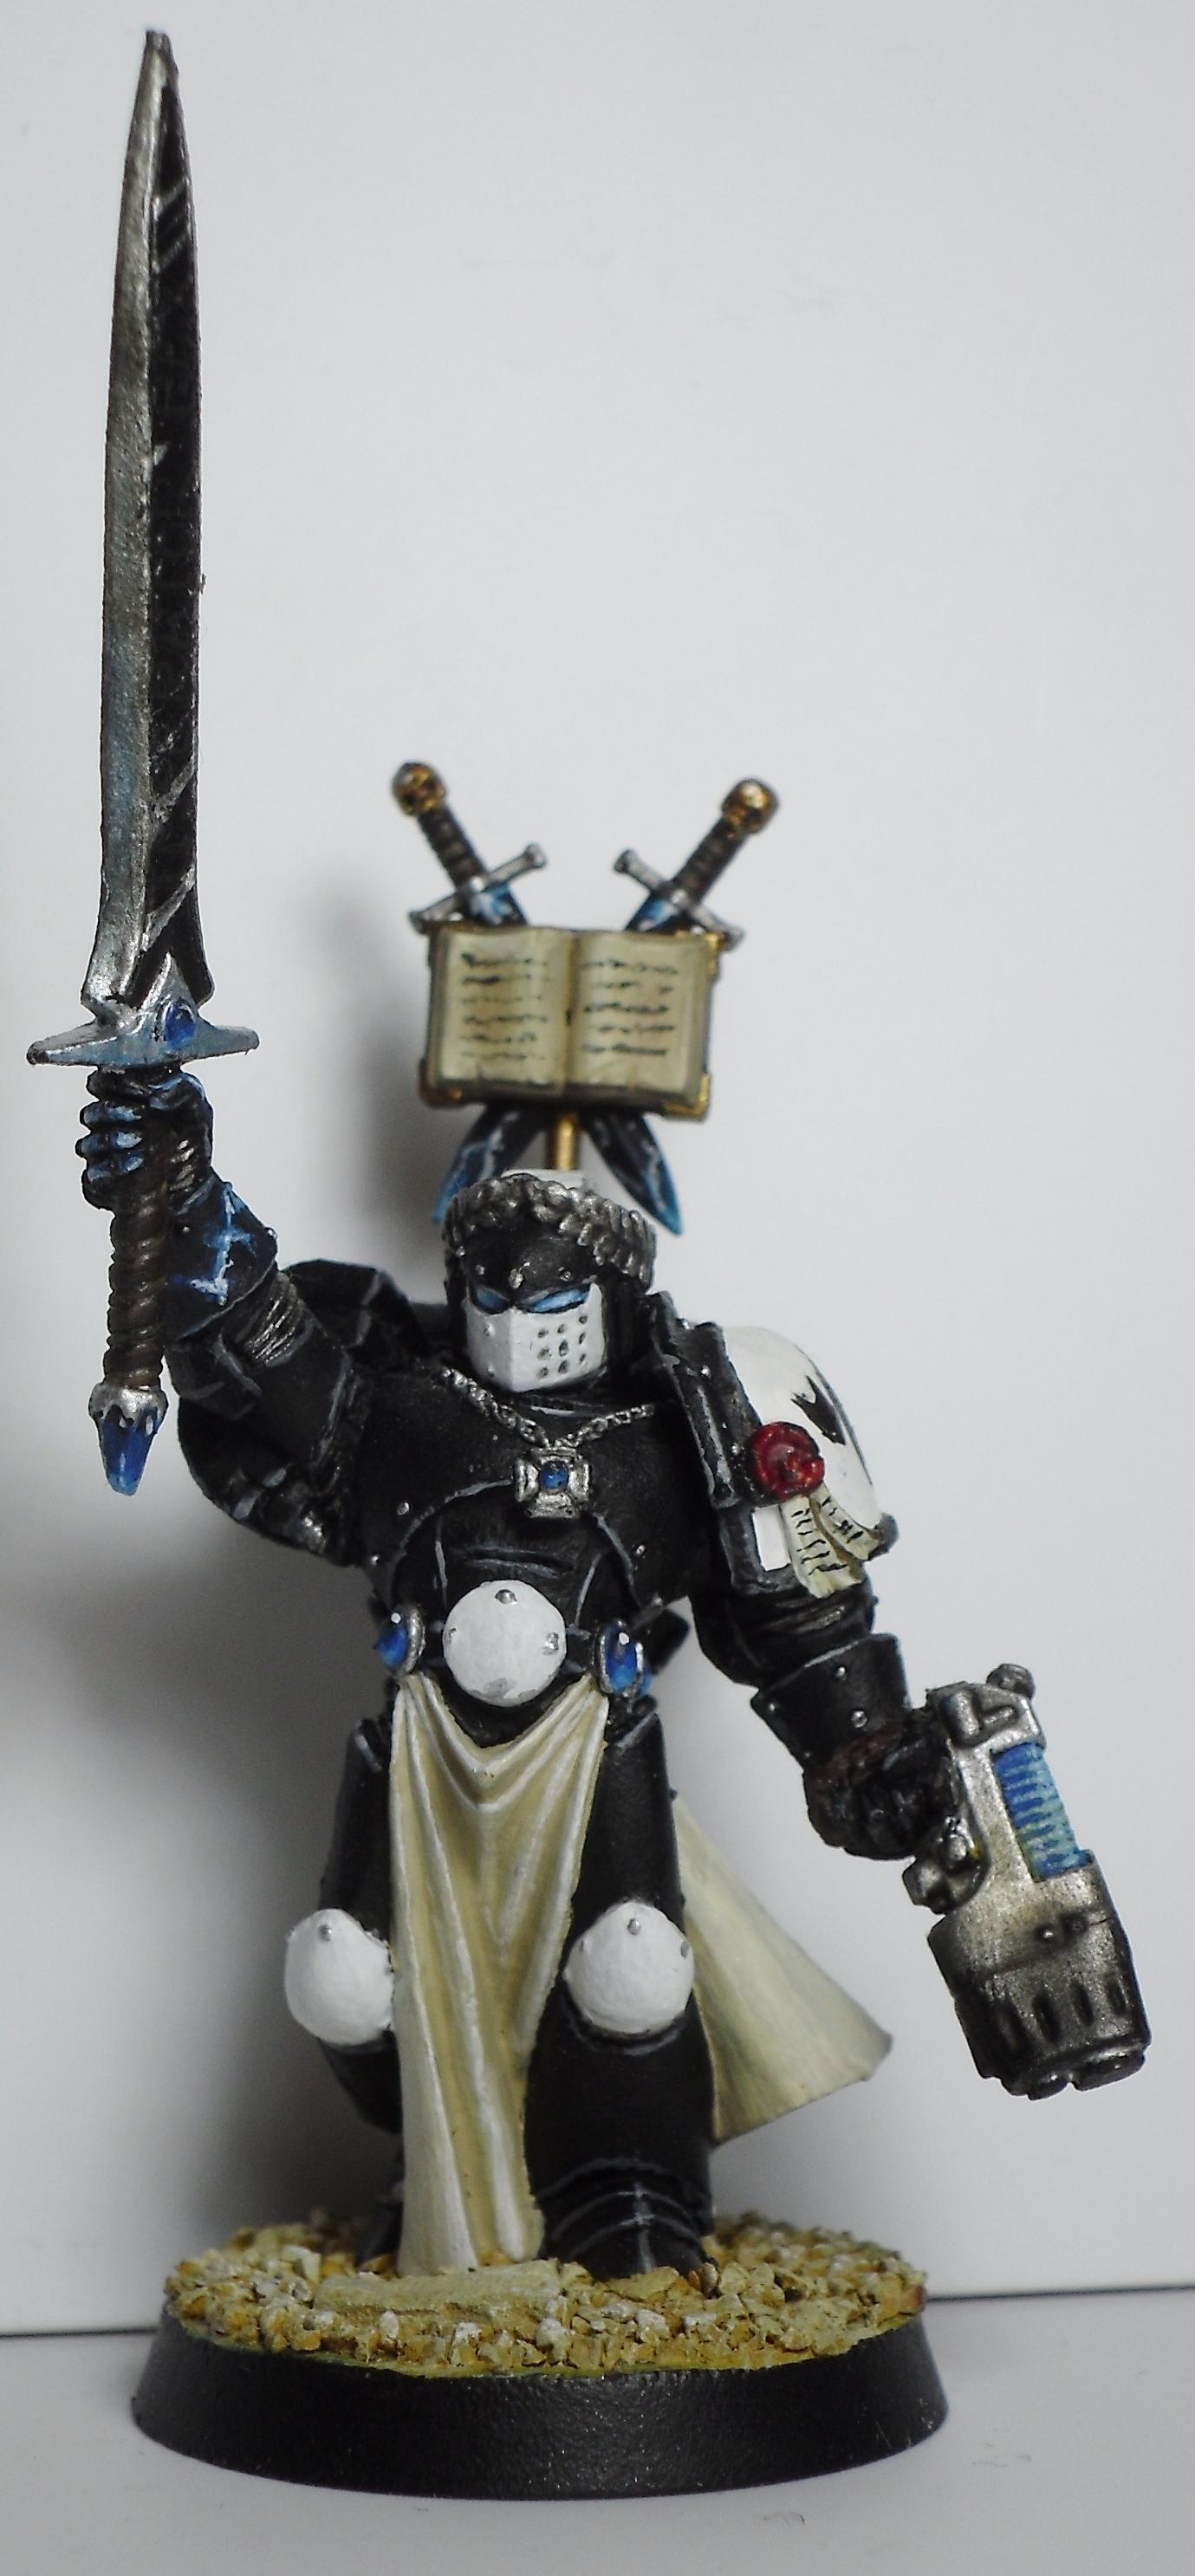 Black Templars, Emperor's Champion, Space Marines, Warhammer 40,000